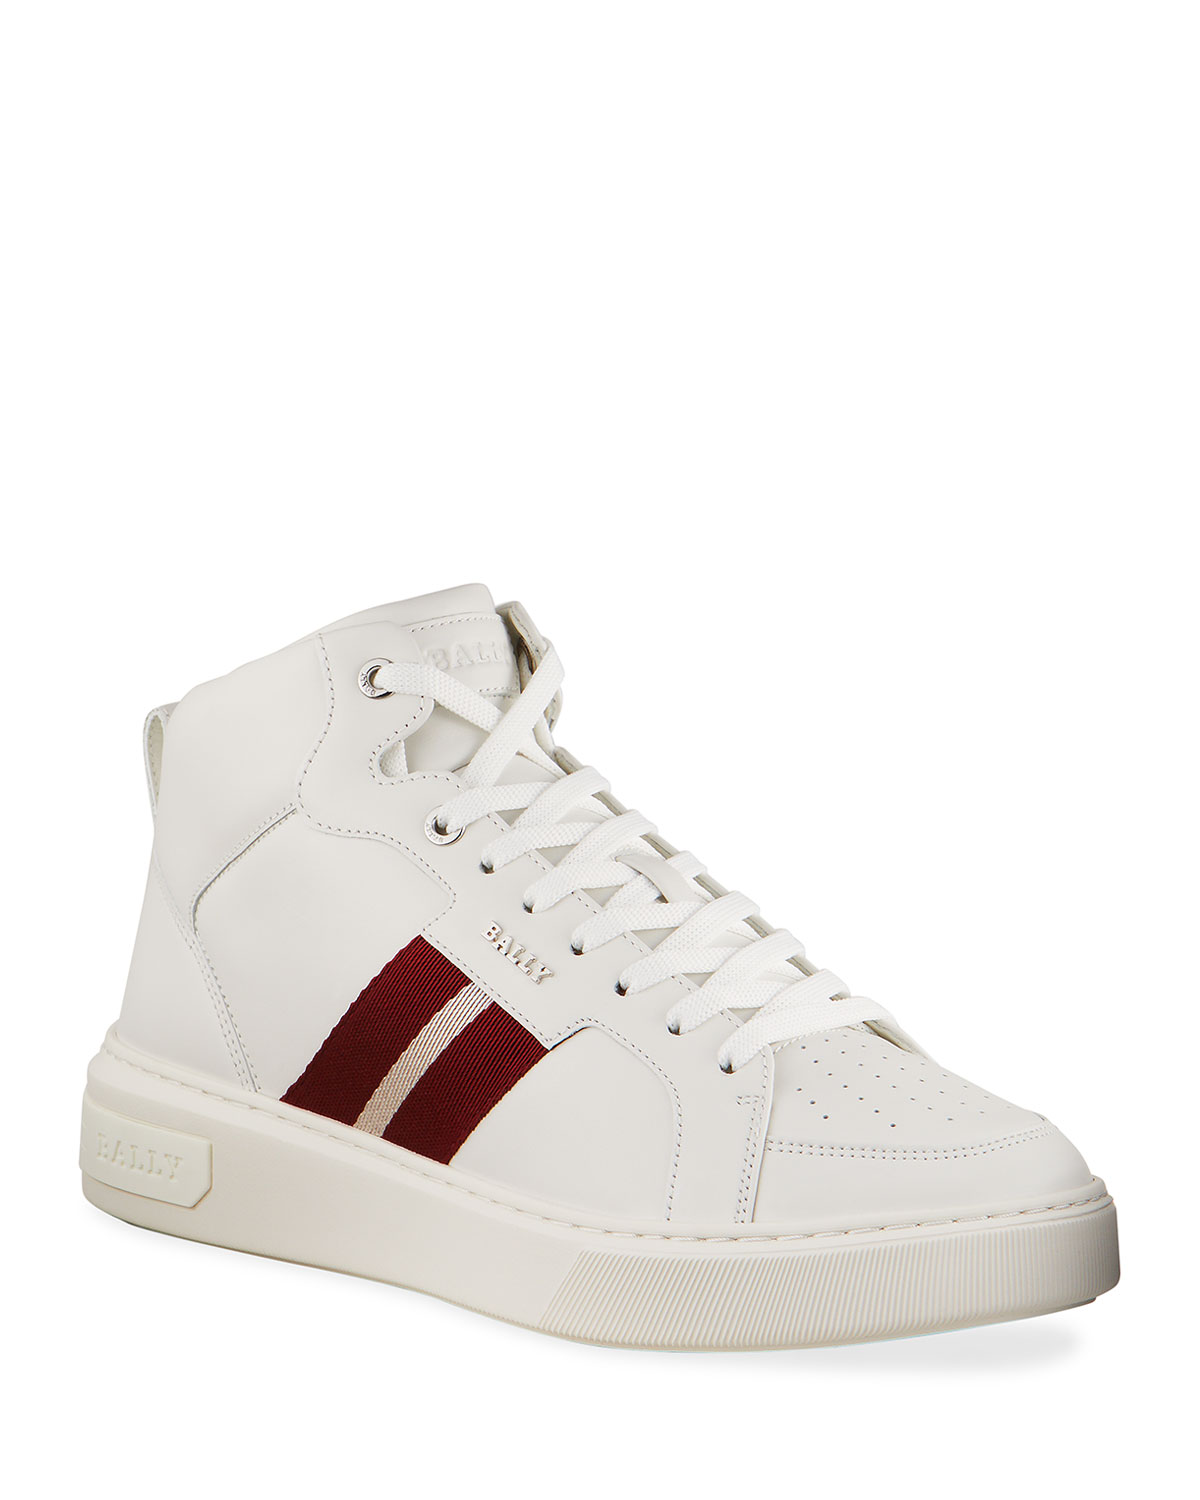 Bally MEN'S MYLES 07 TRAINSPOTTING LEATHER HIGH-TOP SNEAKERS